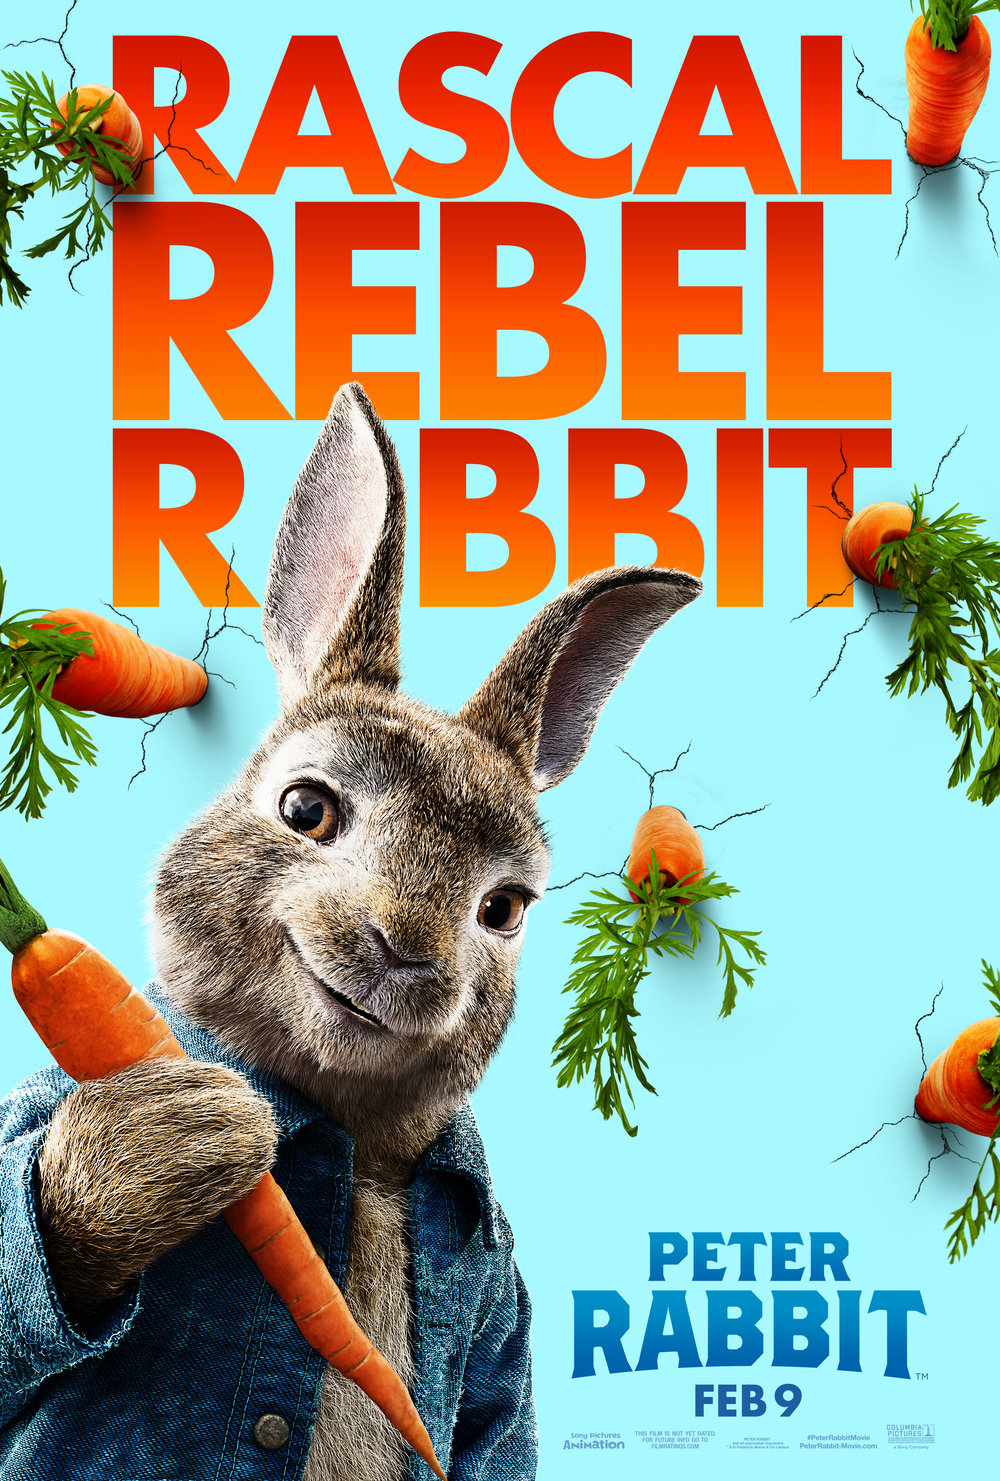 Peter rabbit movie